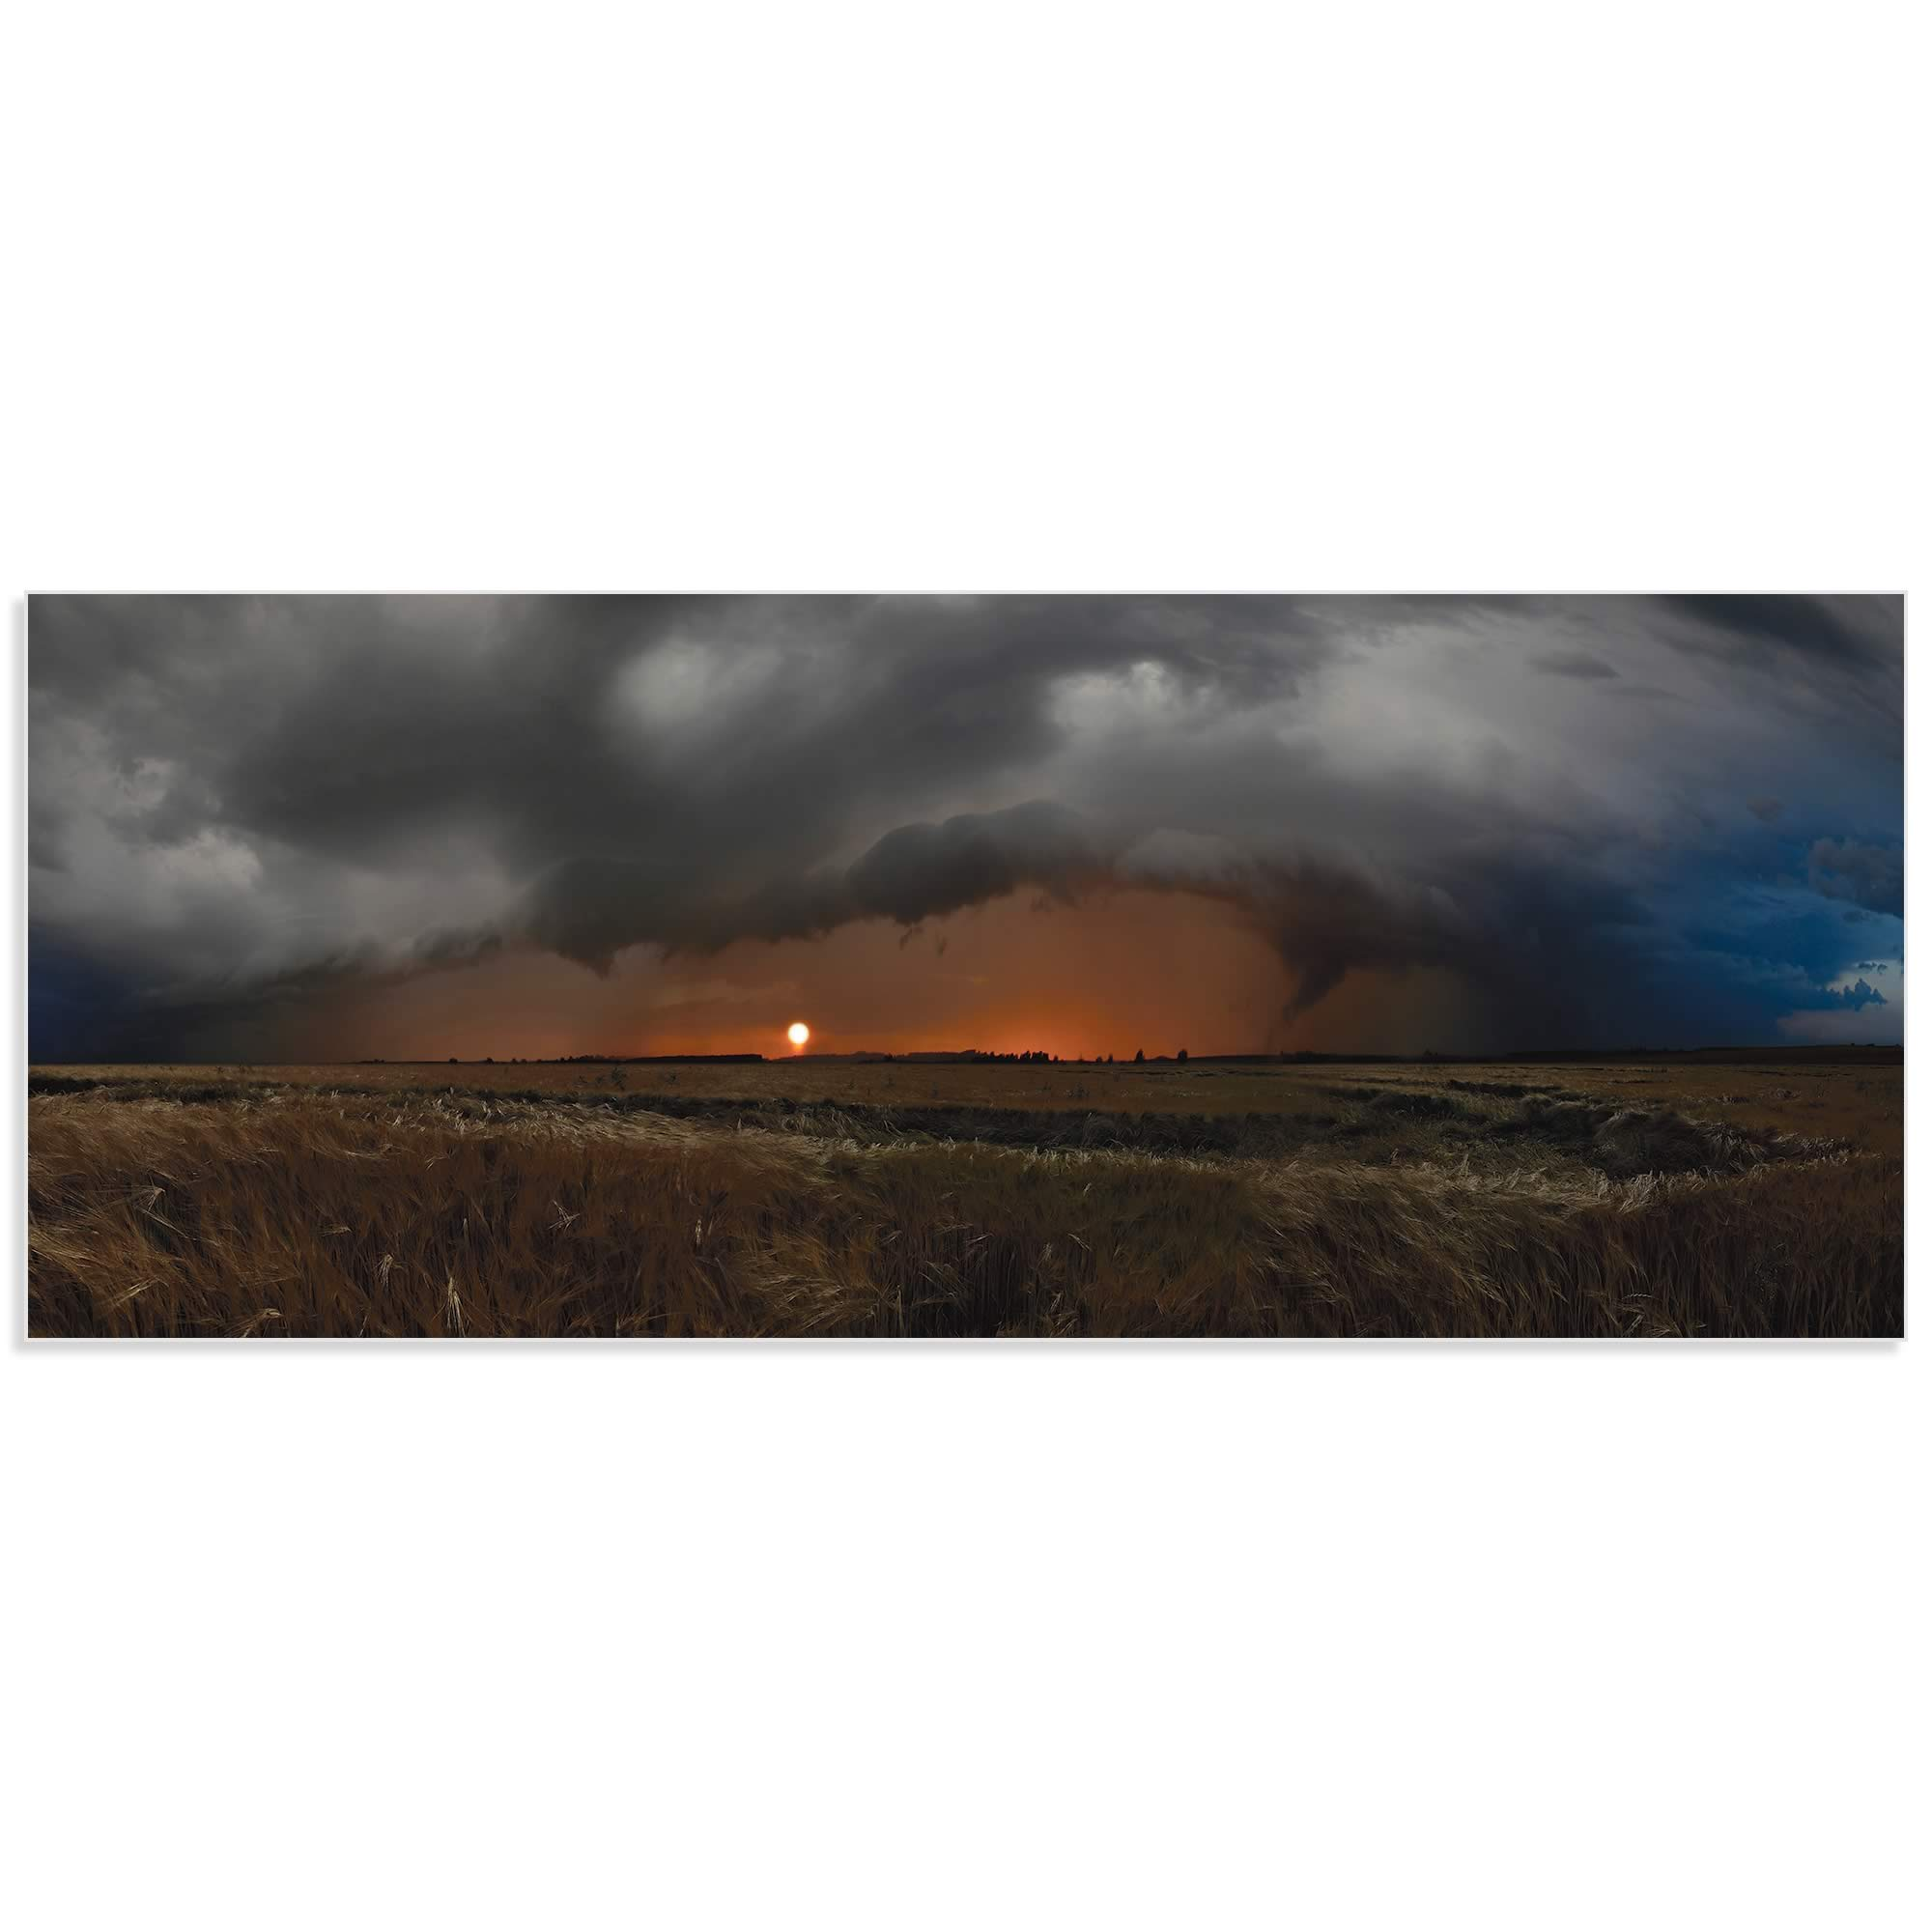 Plains of Fury by Franz Schumacher - Storm Pictures on Metal or Acrylic - Alternate View 2